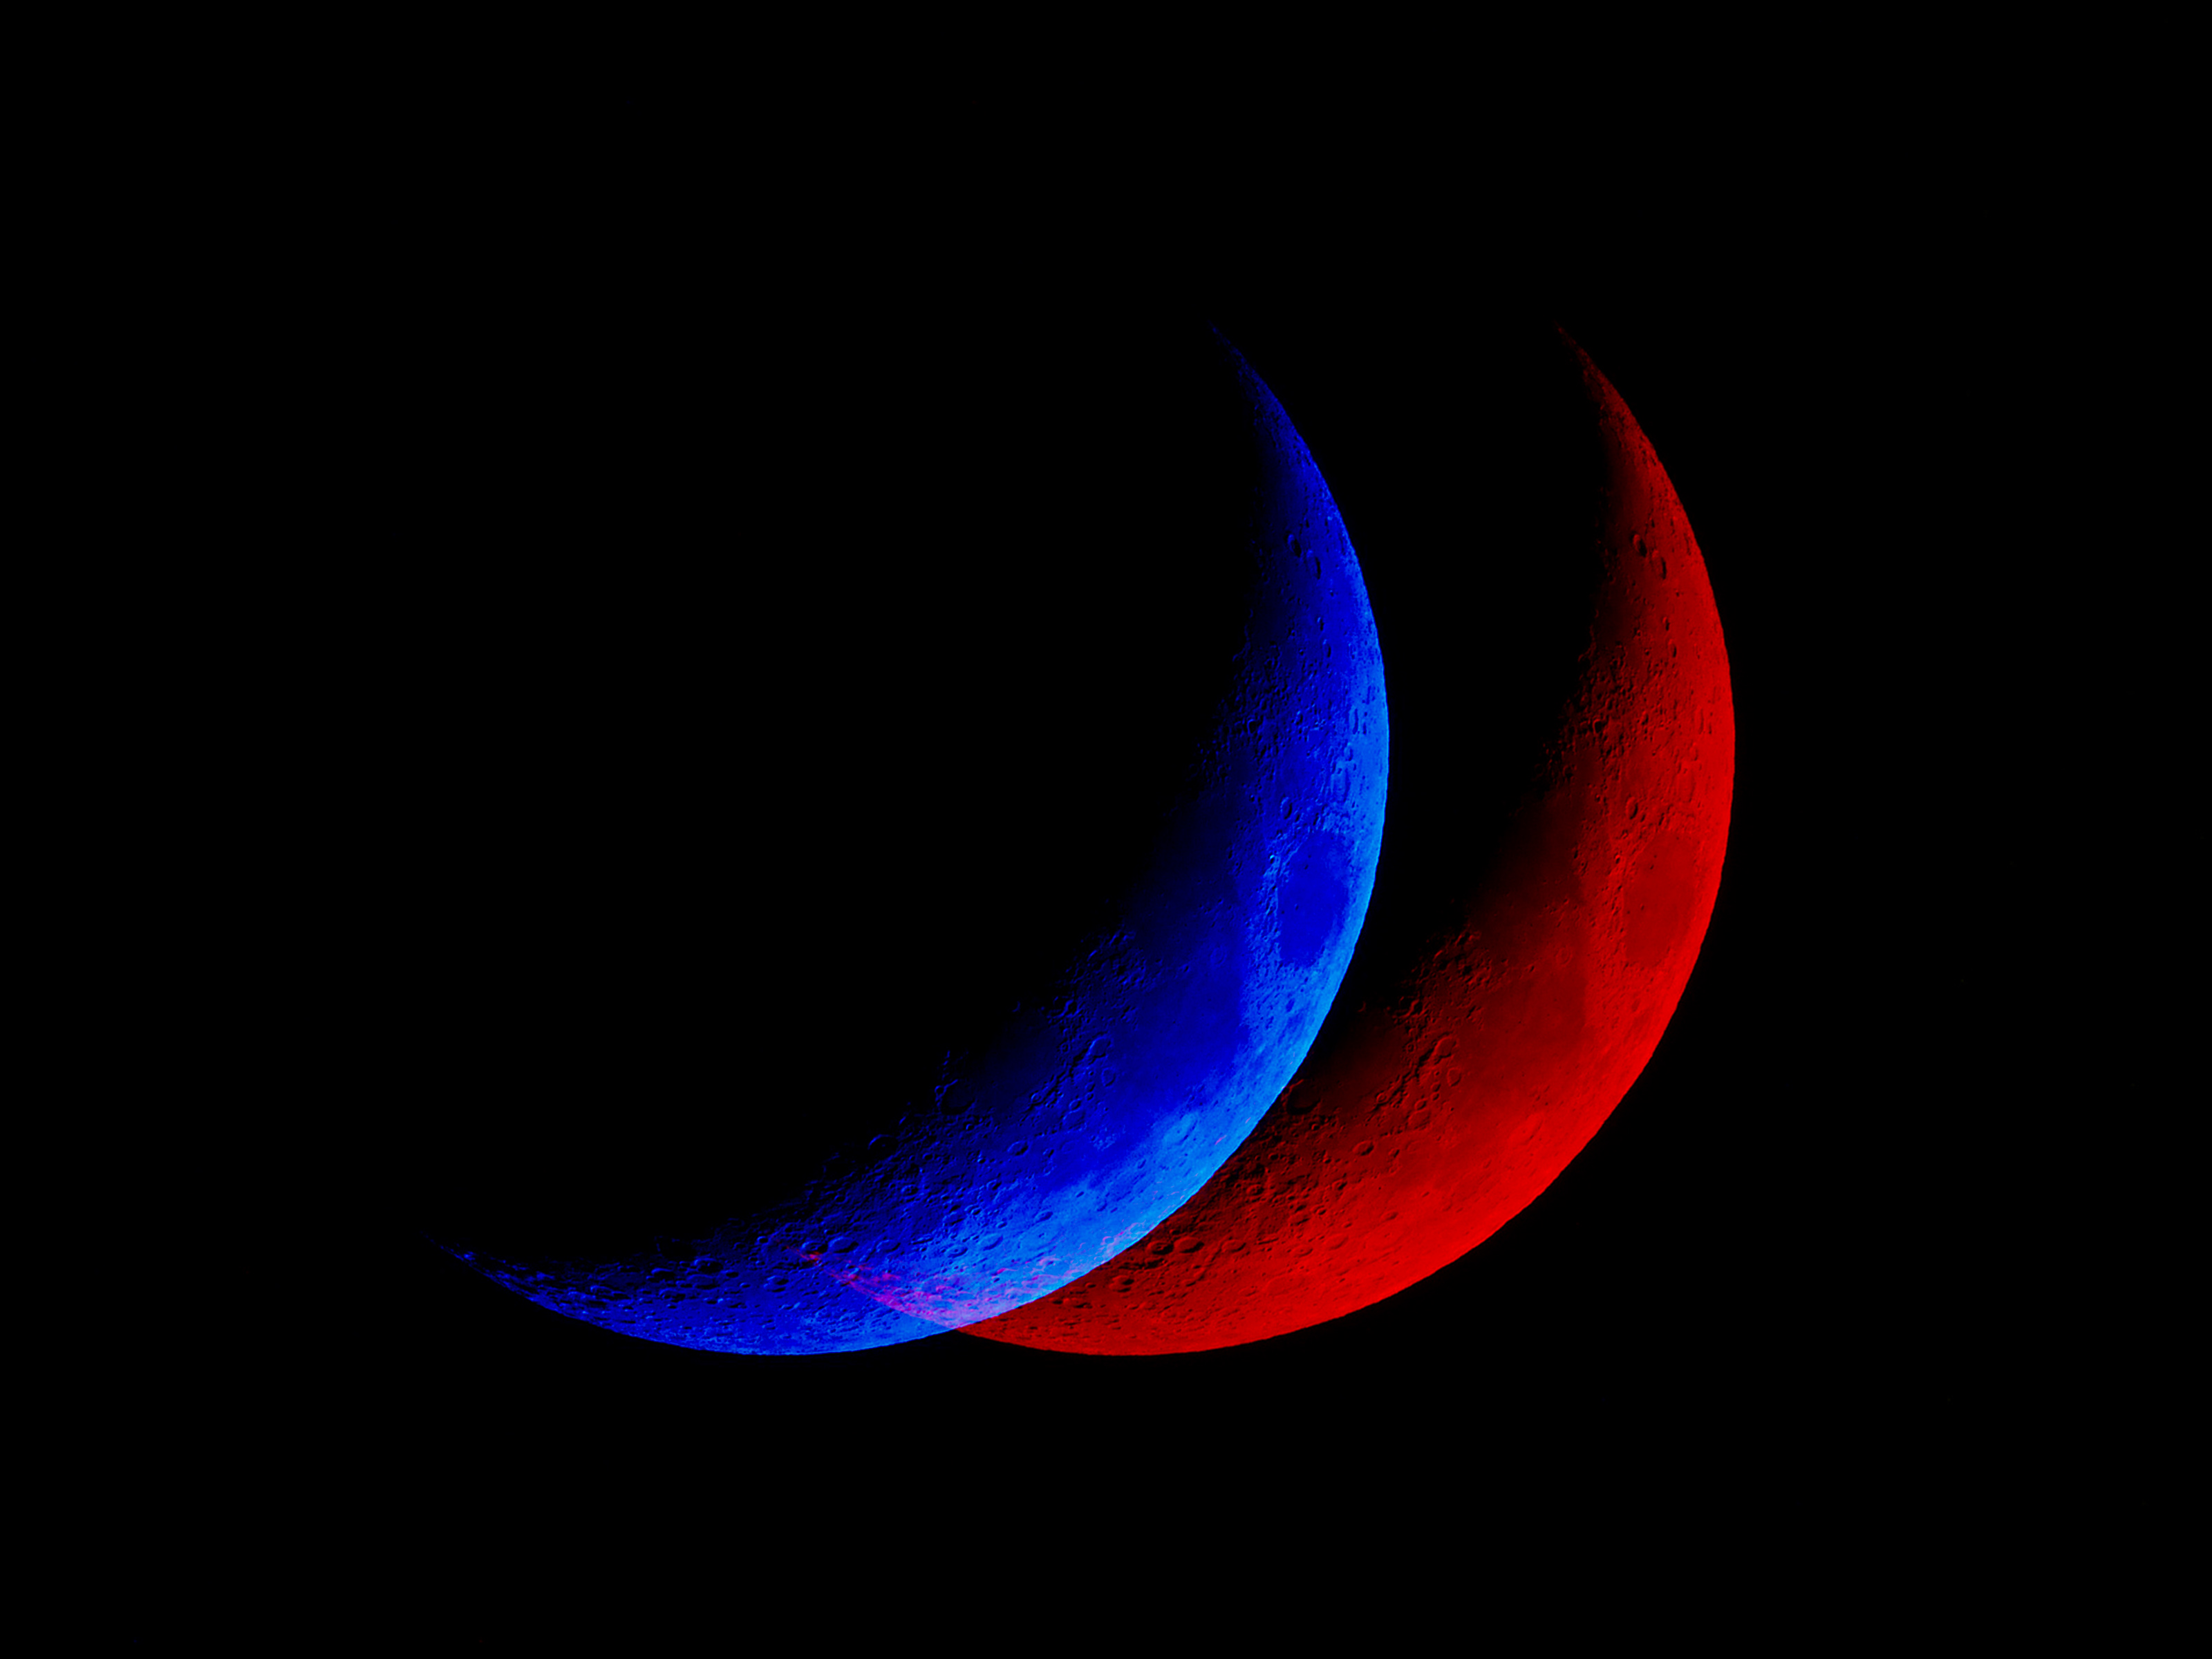 Abstract image of a blue shadowed moon, offset from a red shadowed moon